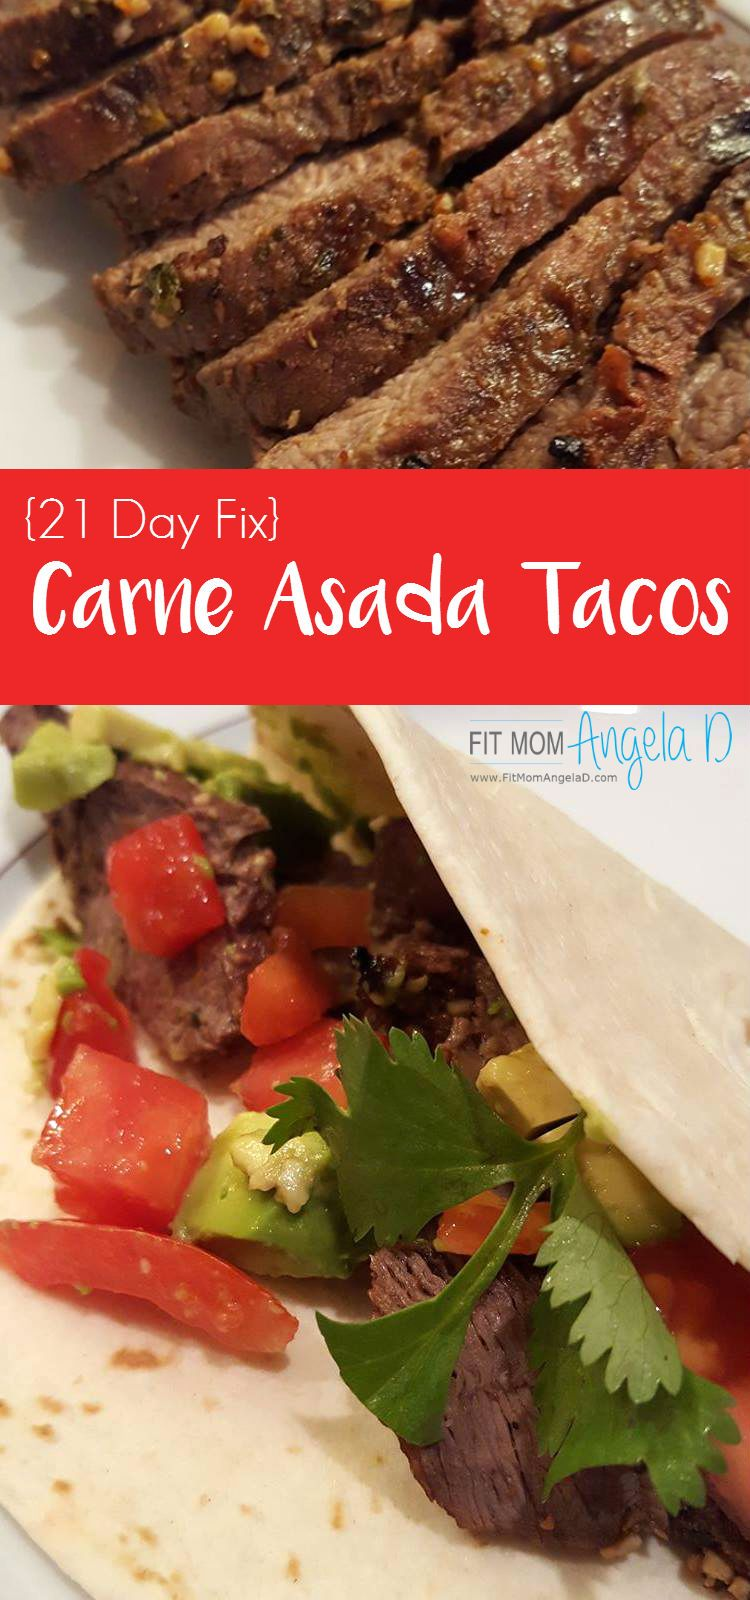 how to cook carne asada on grill